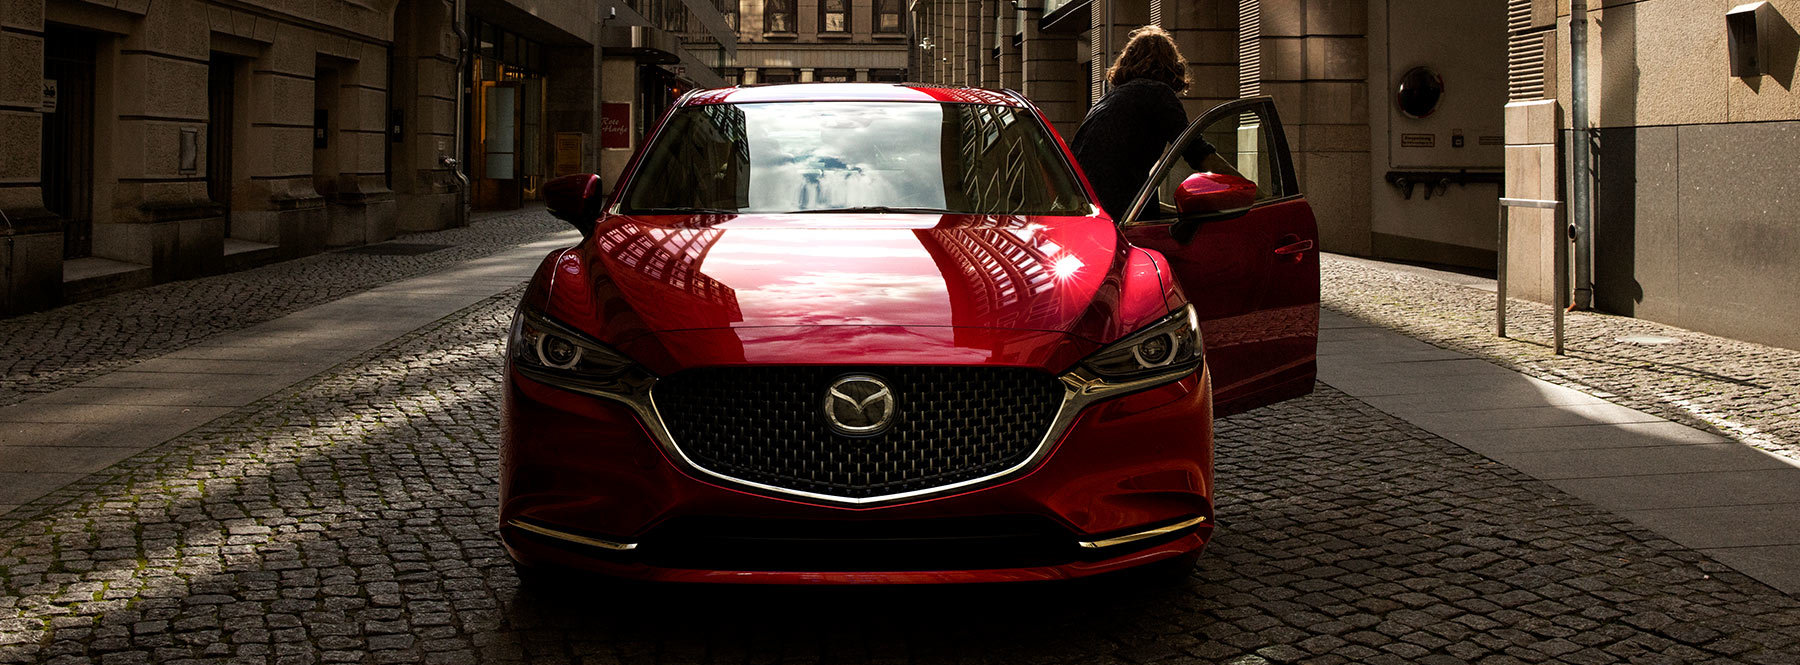 2020 MAZDA6 Technology Features in New Braunfels, TX